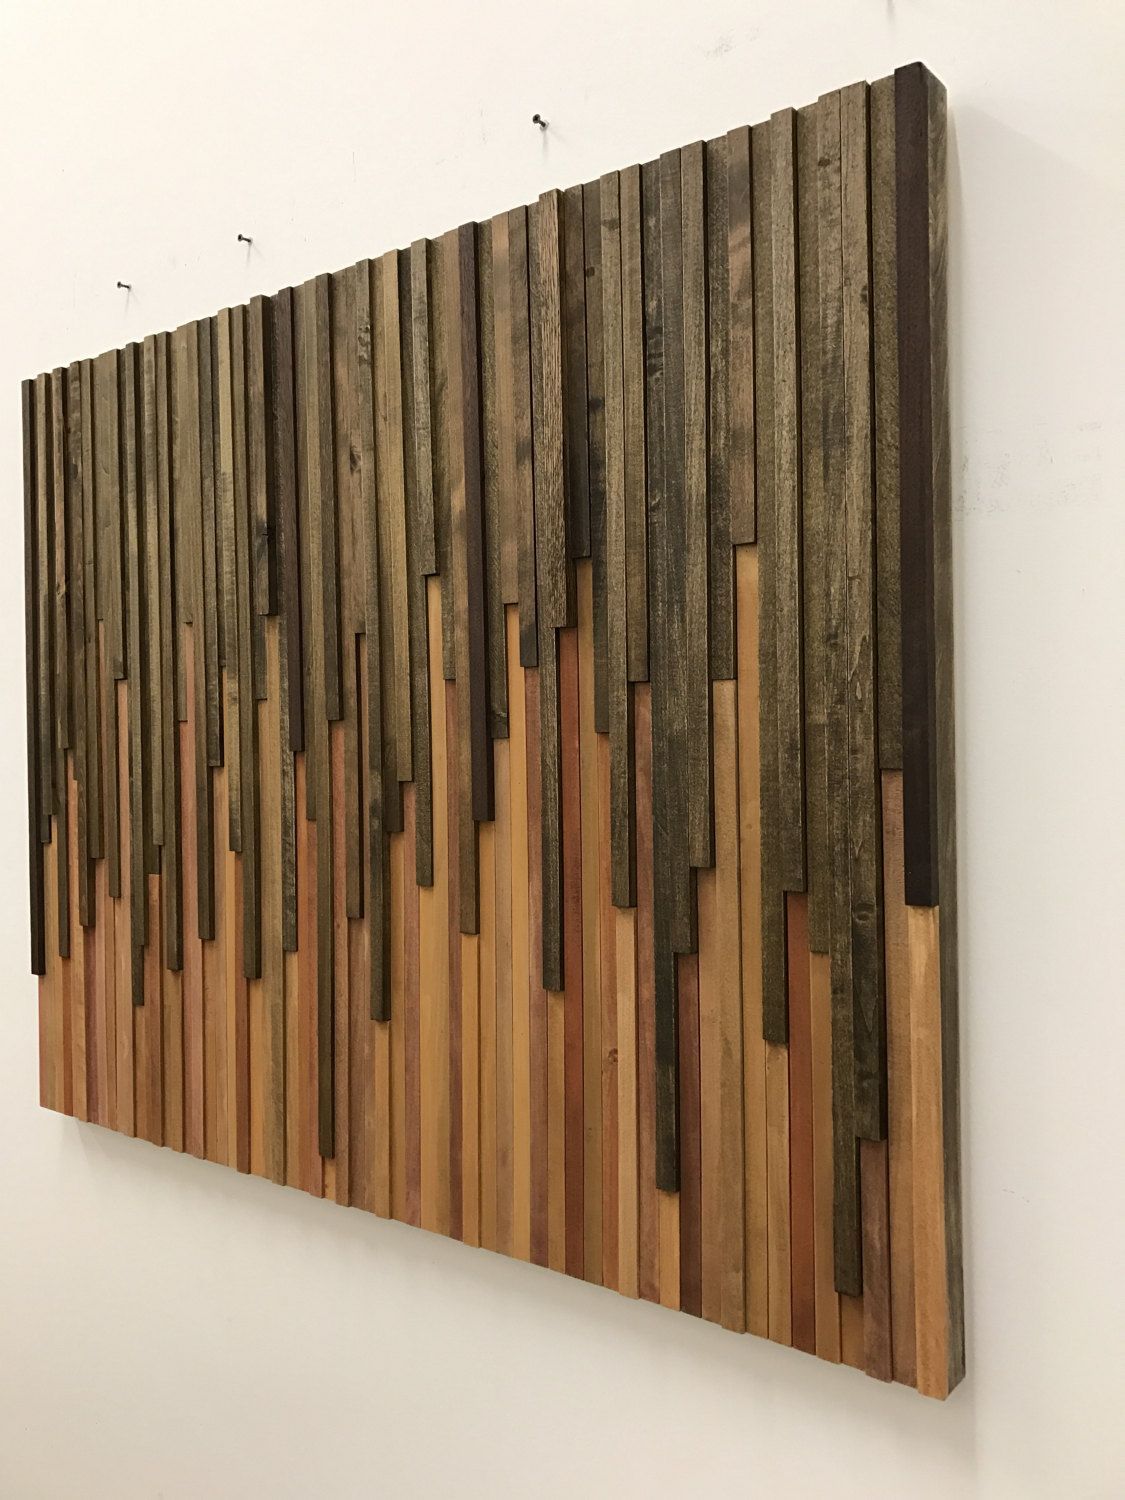 Wall Art - Wood Wall Art - Rustic Wood Sculpture Wall ...